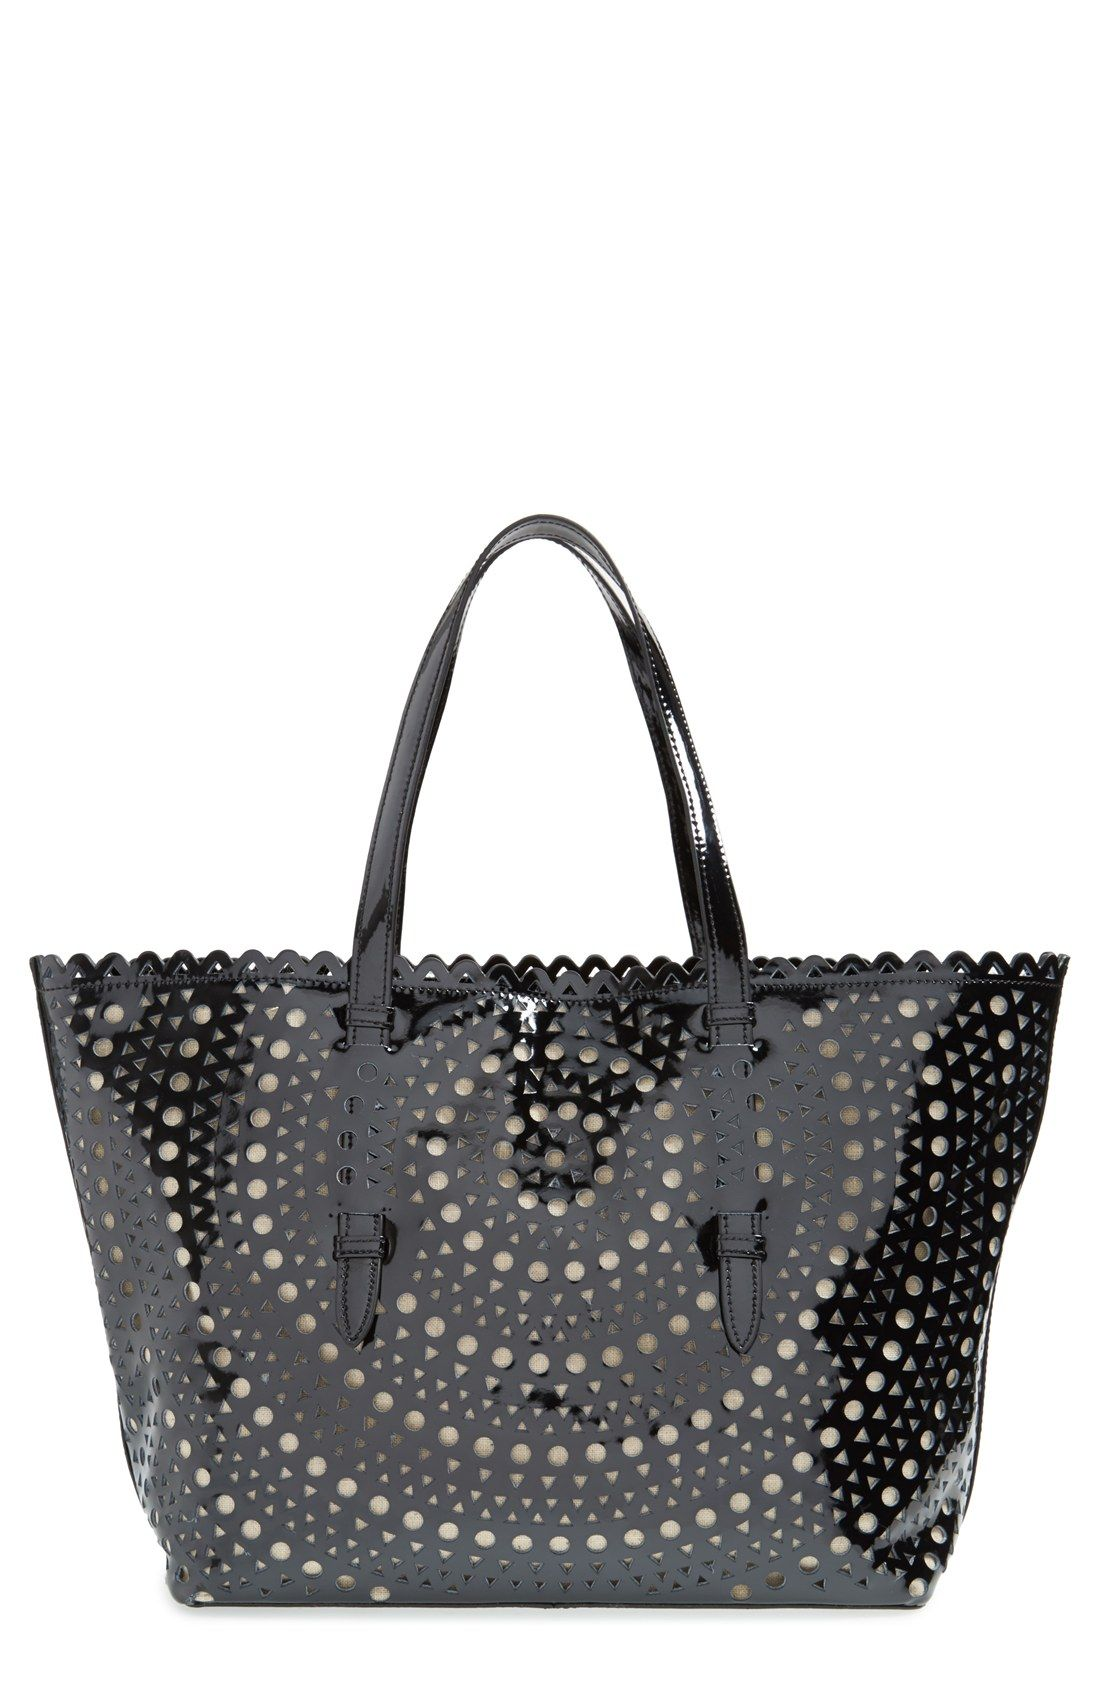 Sondra Roberts Perforated Leather Tote | Nordstrom